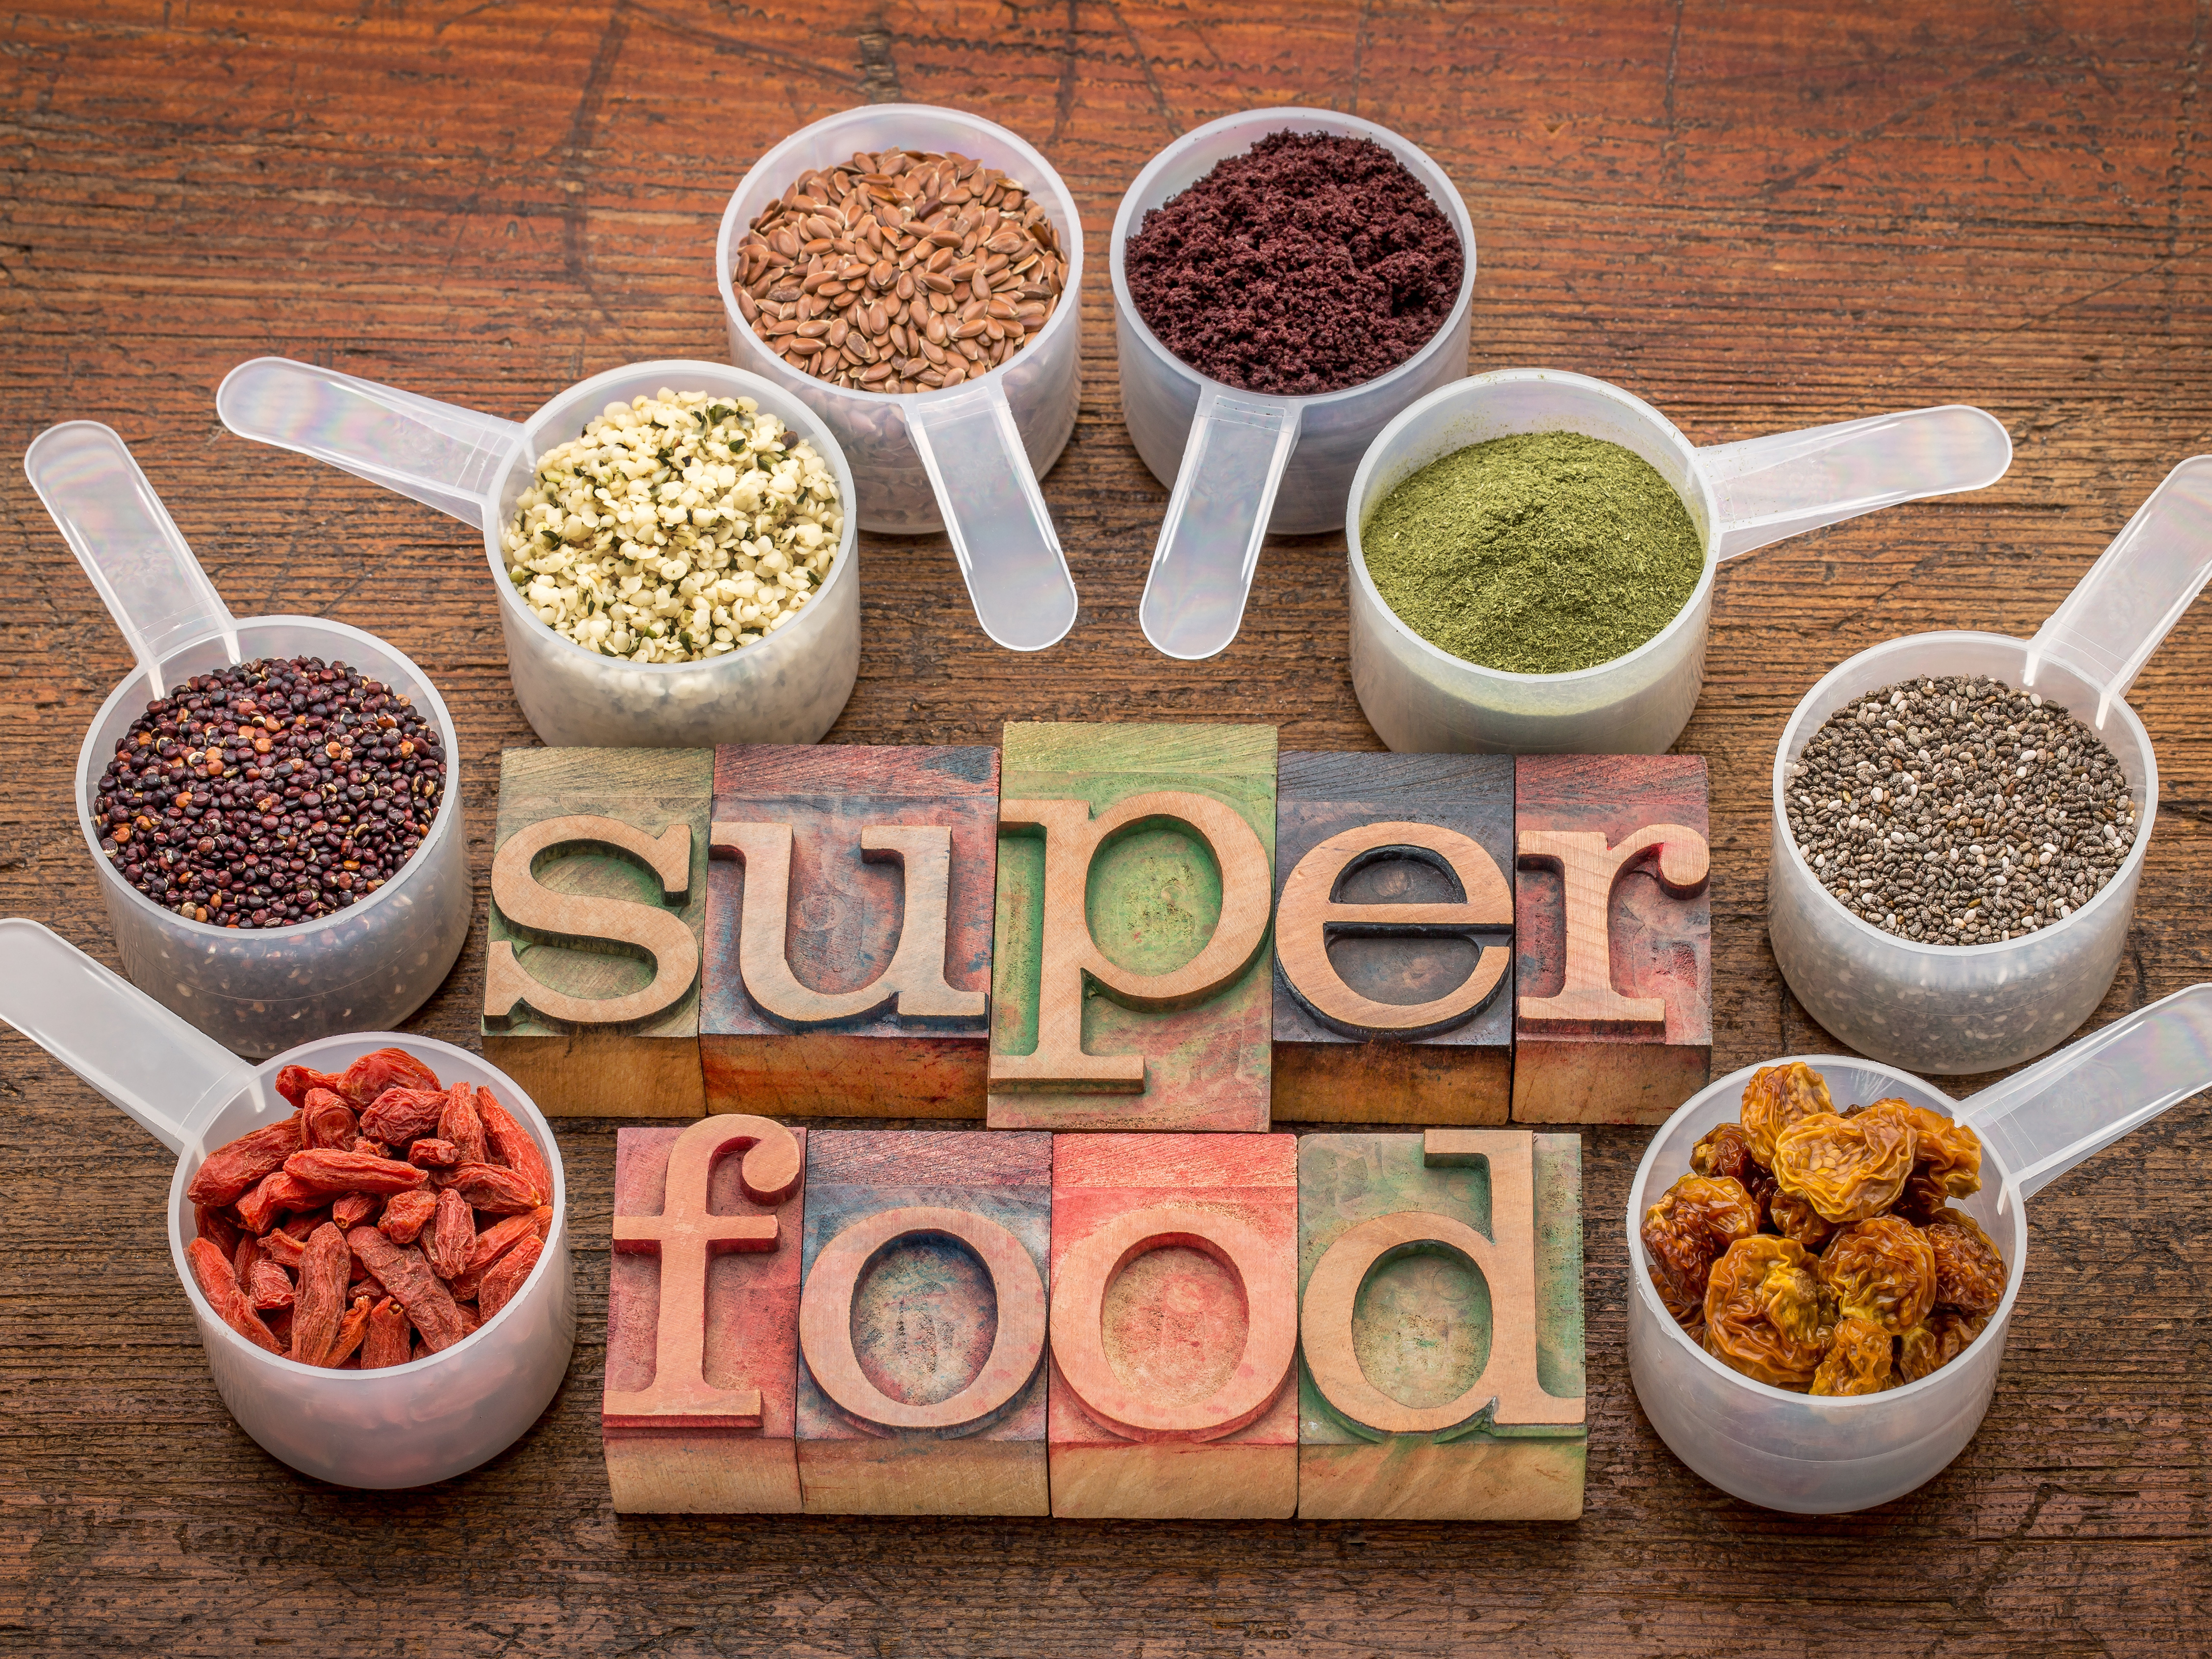 The 7 superfoods you haven't heard of (yet)